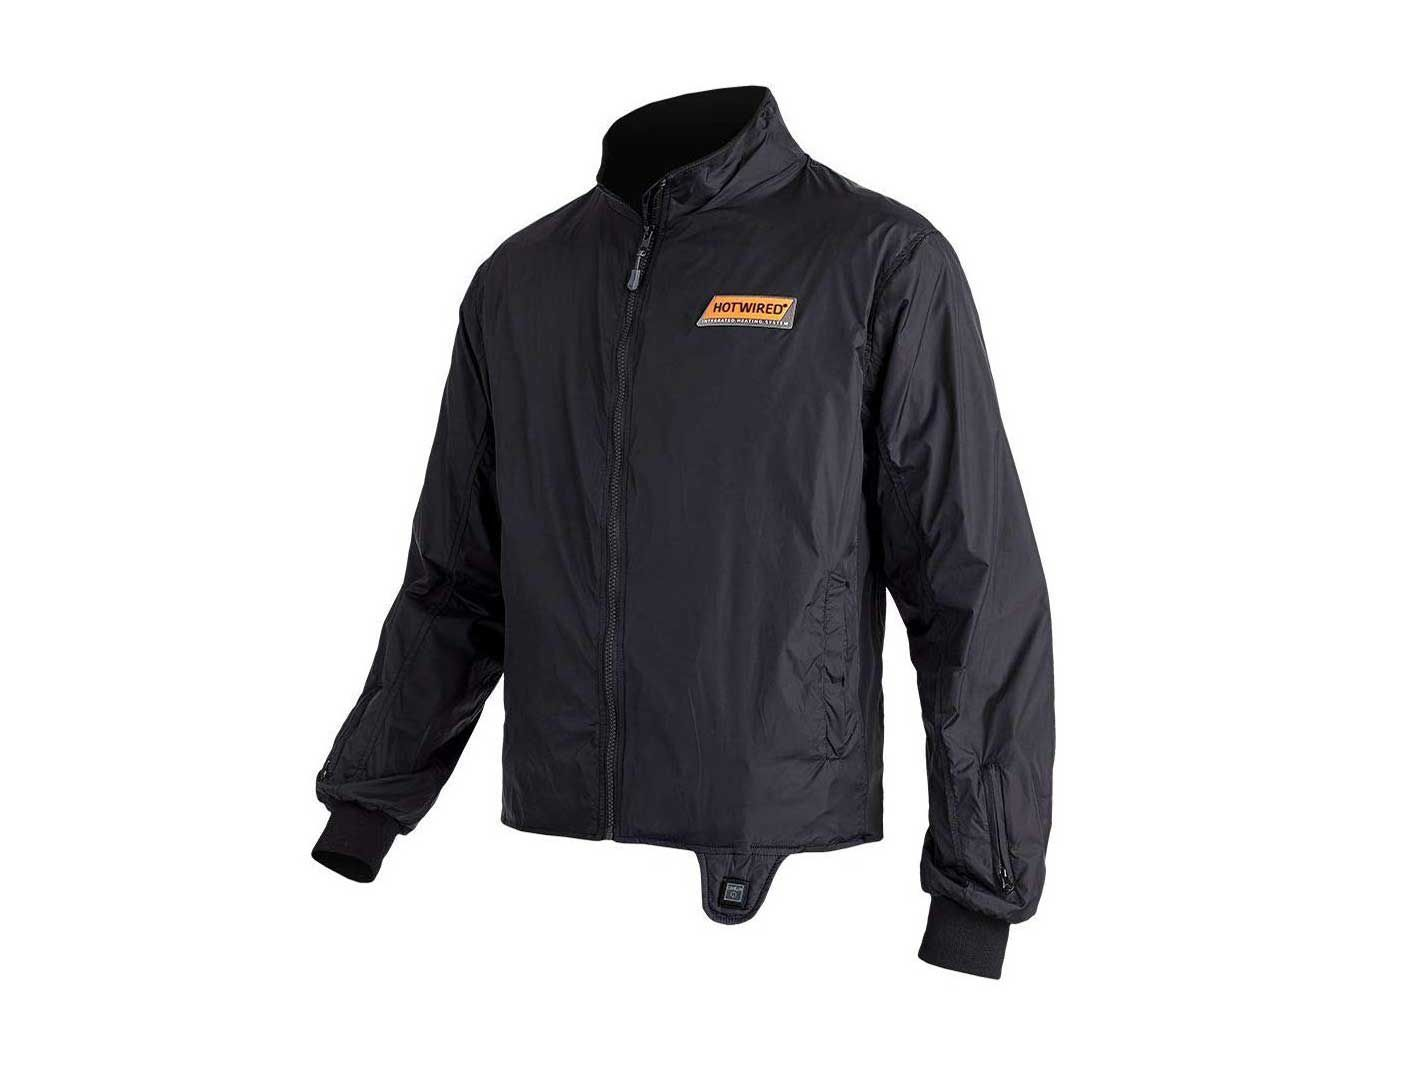 Hotwired Evo 12V Heated Thermal Mid Layer Winter Jacket Liner